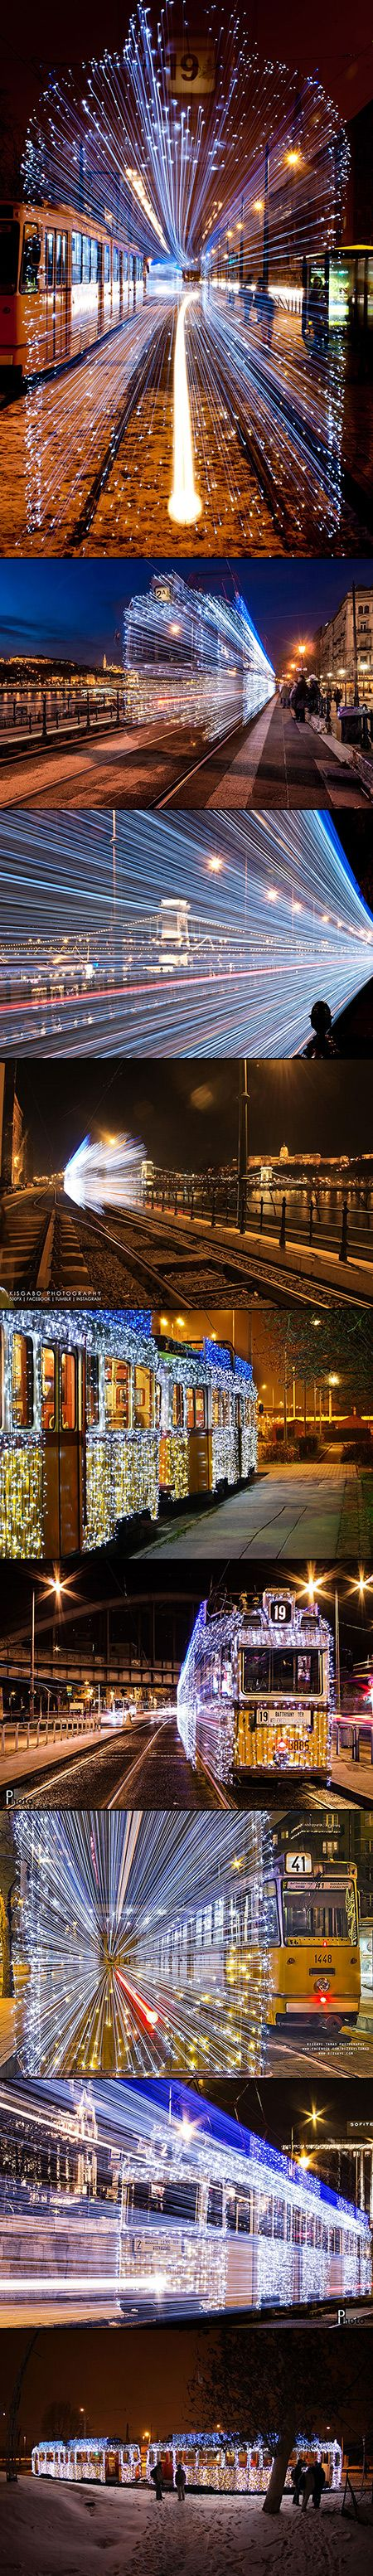 Most major cities magically light up during the holiday season, and the Hungarian capital of Budapest is no different. Every winter, this city is covered in festive holiday decorations, but one of the most interesting of these are the city's trams, which are covered in 30,000 bright blinking LED lights.